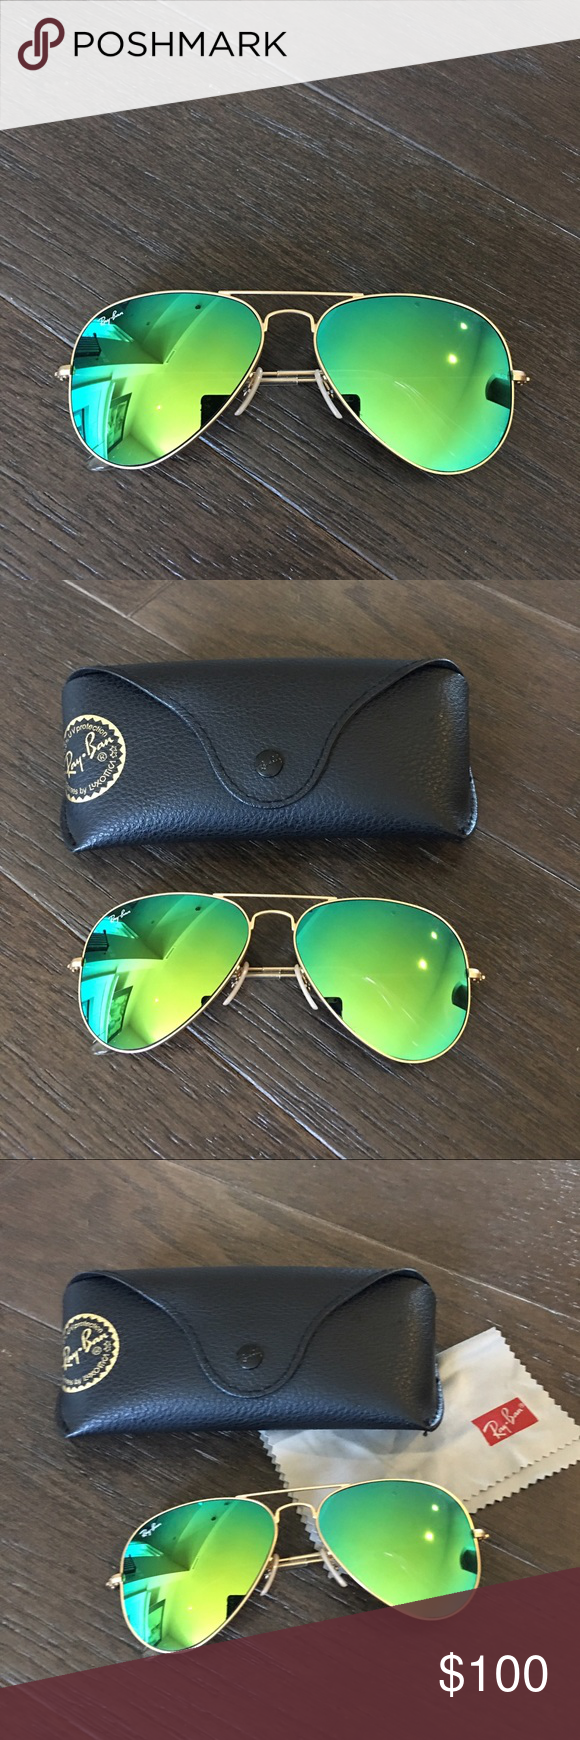 Auth Ray ban green mirrored flash lens sunglasses Worn once only, perfect condition, matte gold with green mirrored flash lens. 58mm Ray-Ban Accessories Sunglasses